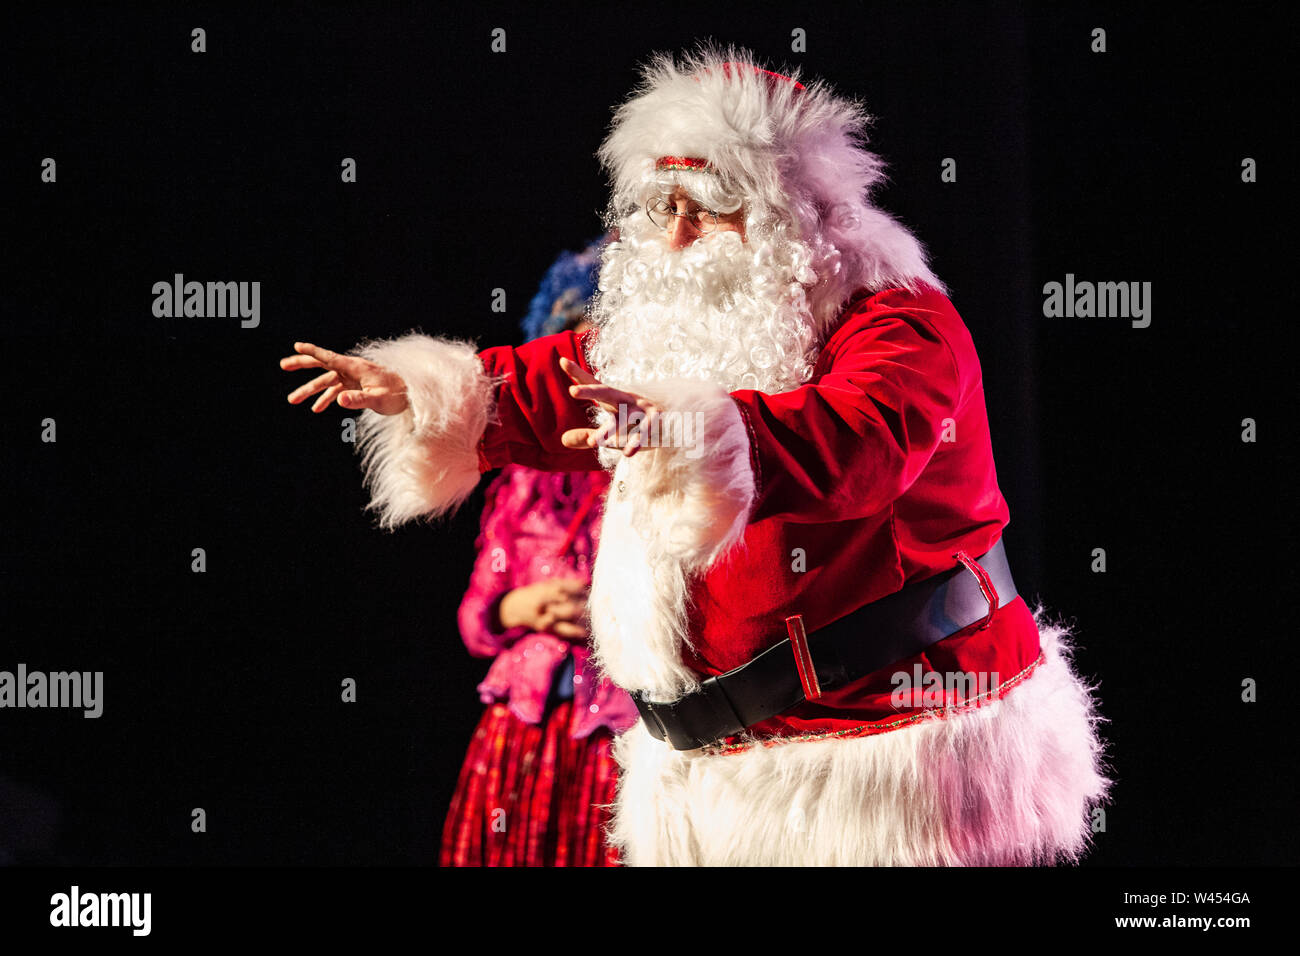 A large man dressed in a Saint Nicholas costume is seen reaching his arms out in front to address youngsters at a christmas festival, against a black background Stock Photo